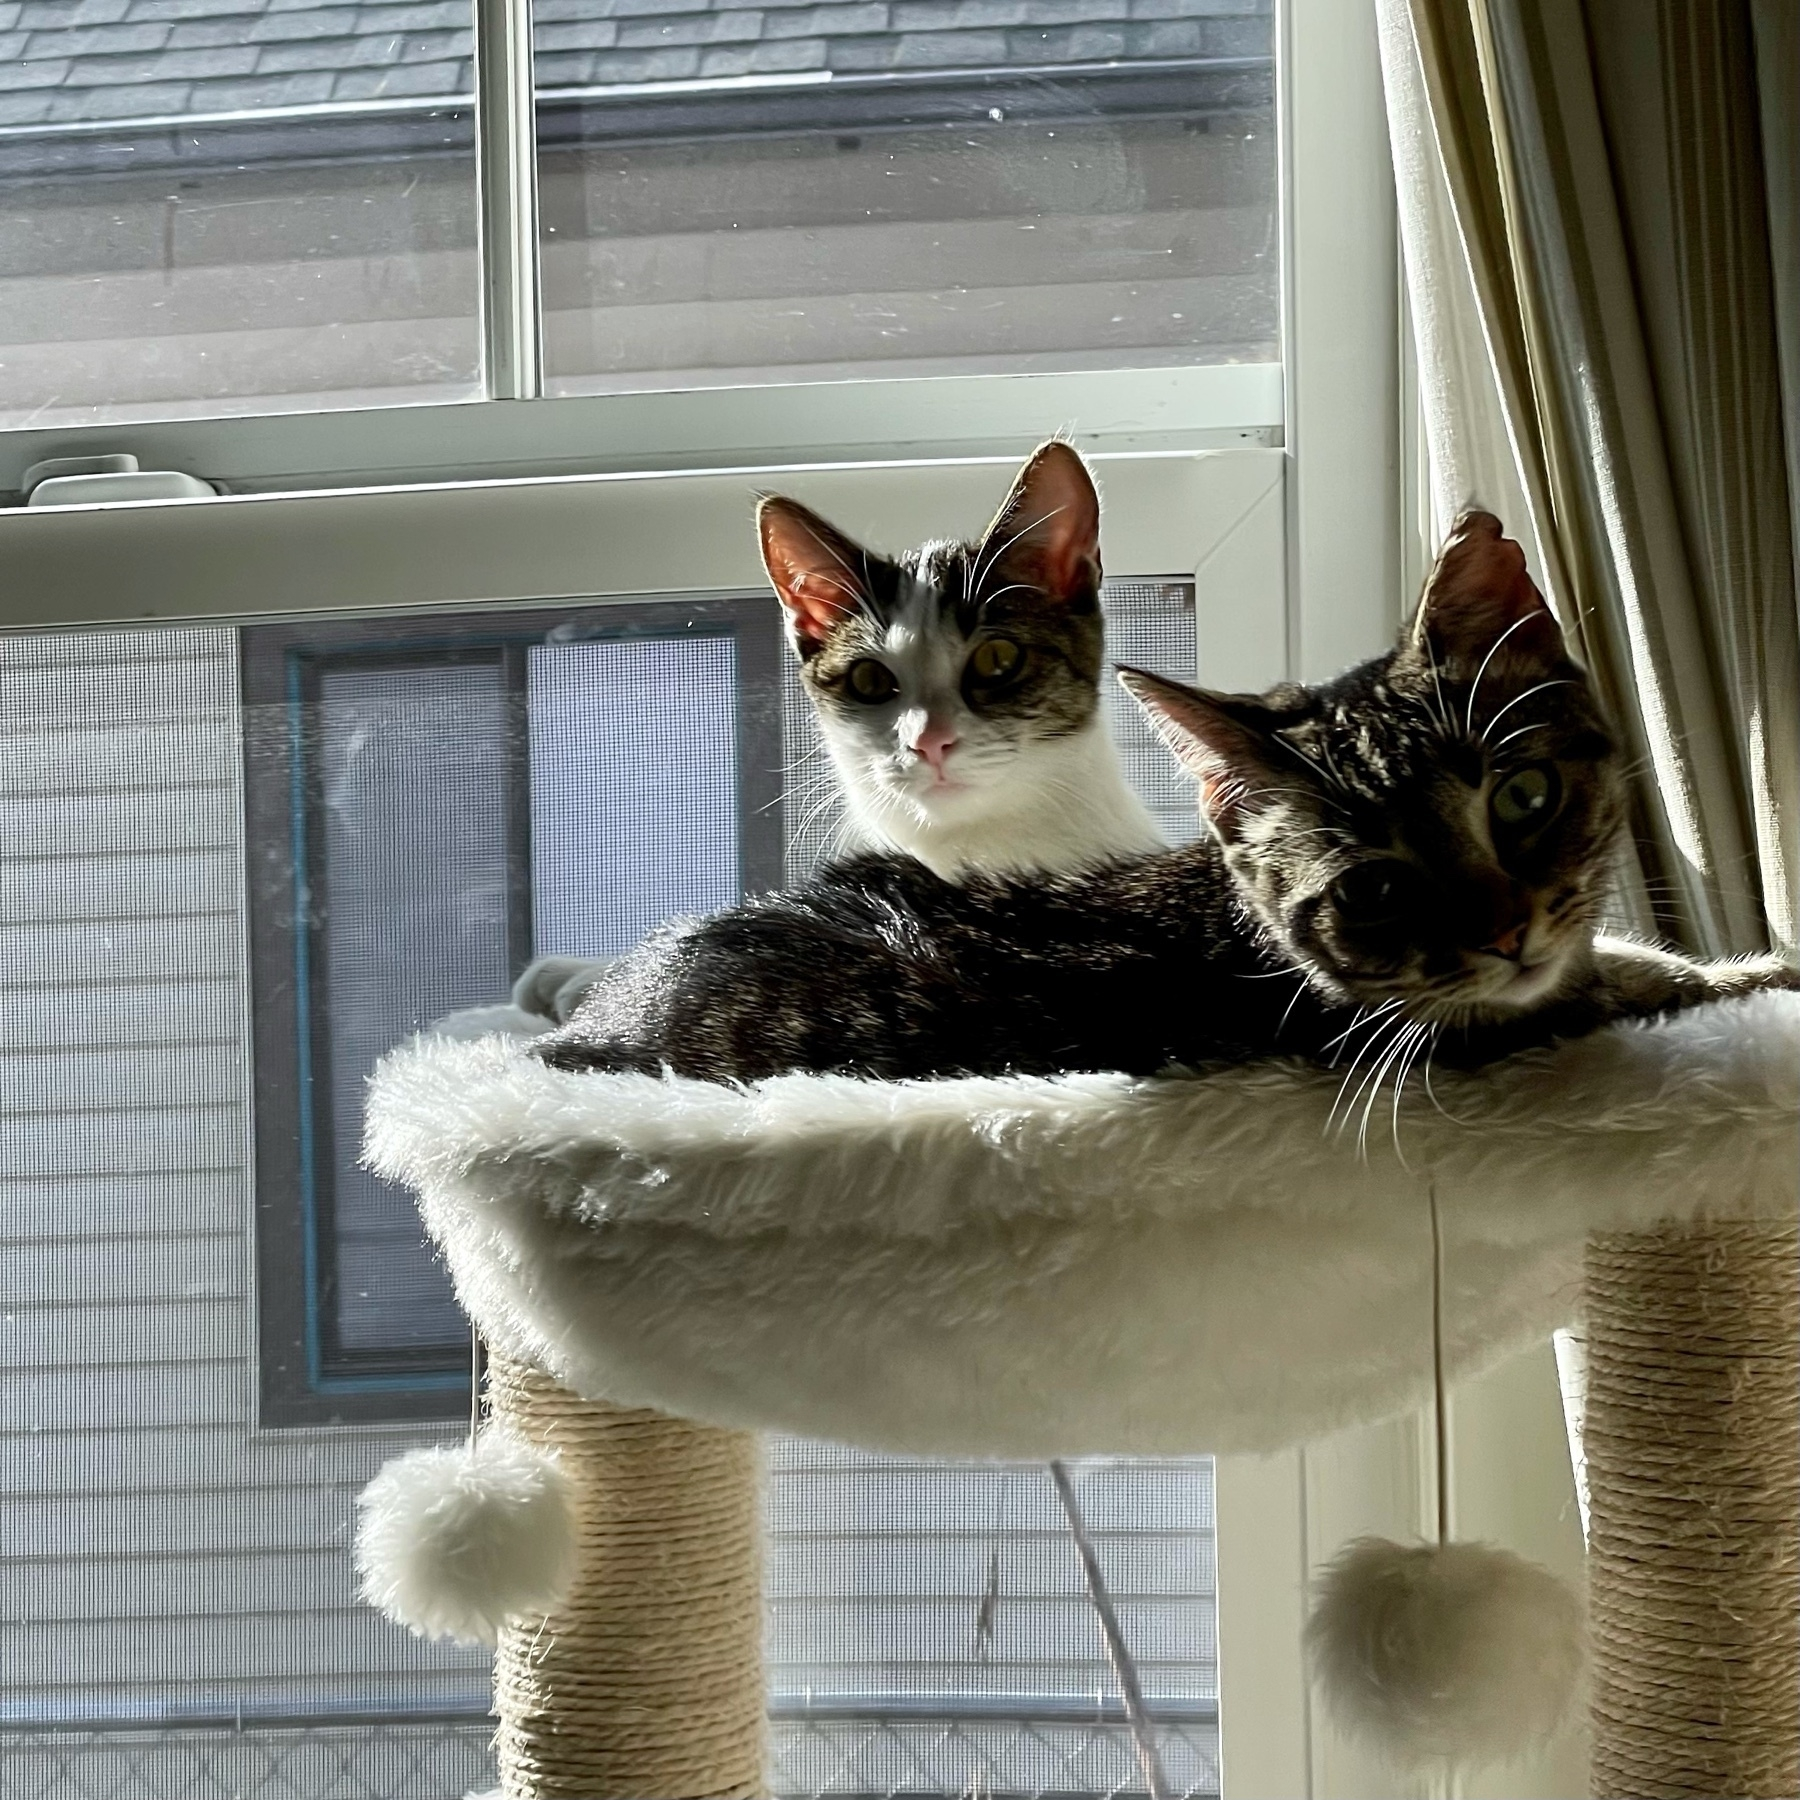 Two kitties on the cat perch in the sun.